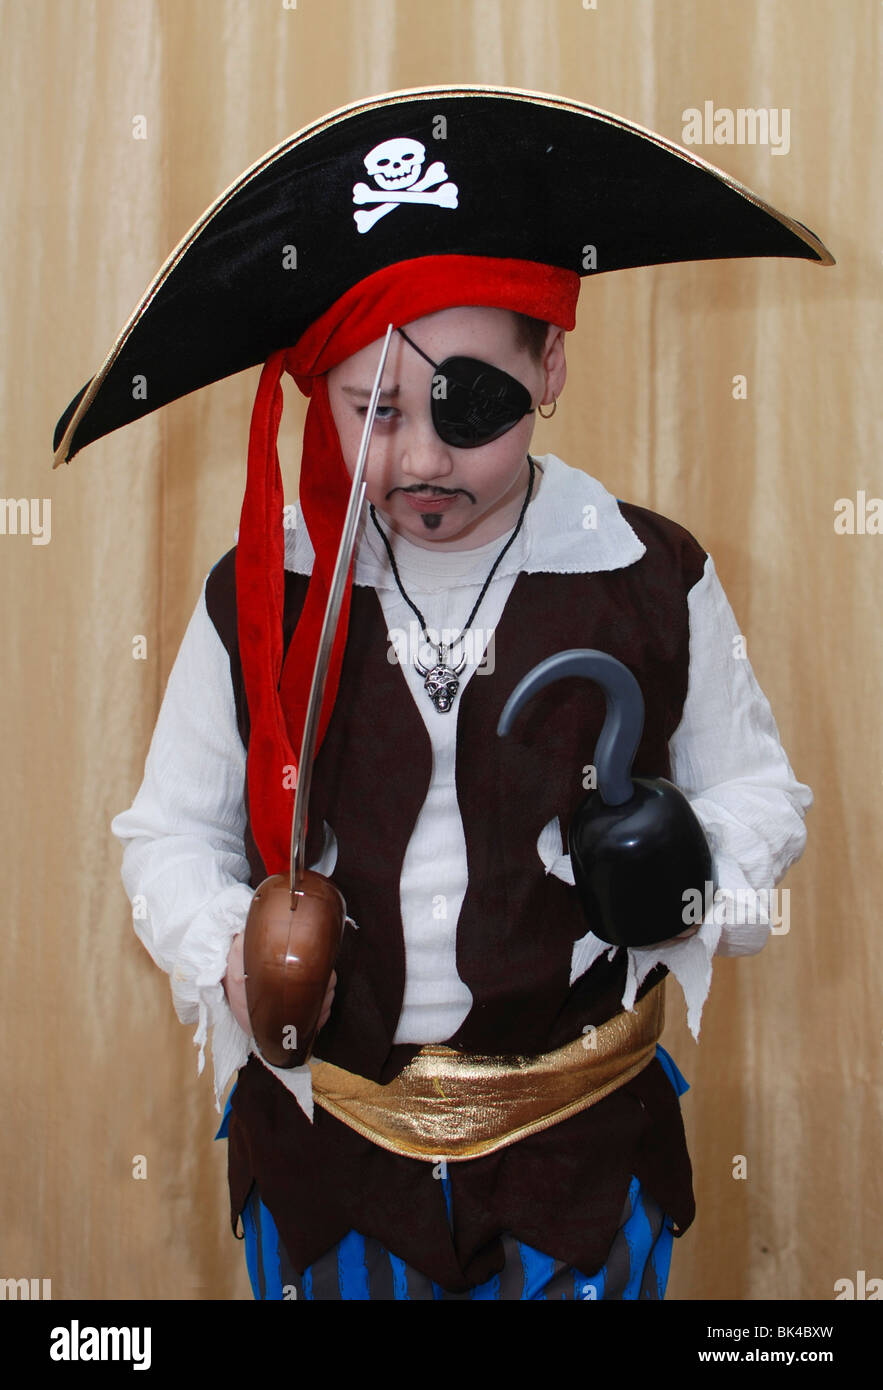 Young boy of 7 dressed up as a pirate for the Jewish celebration of Purim - Stock Image